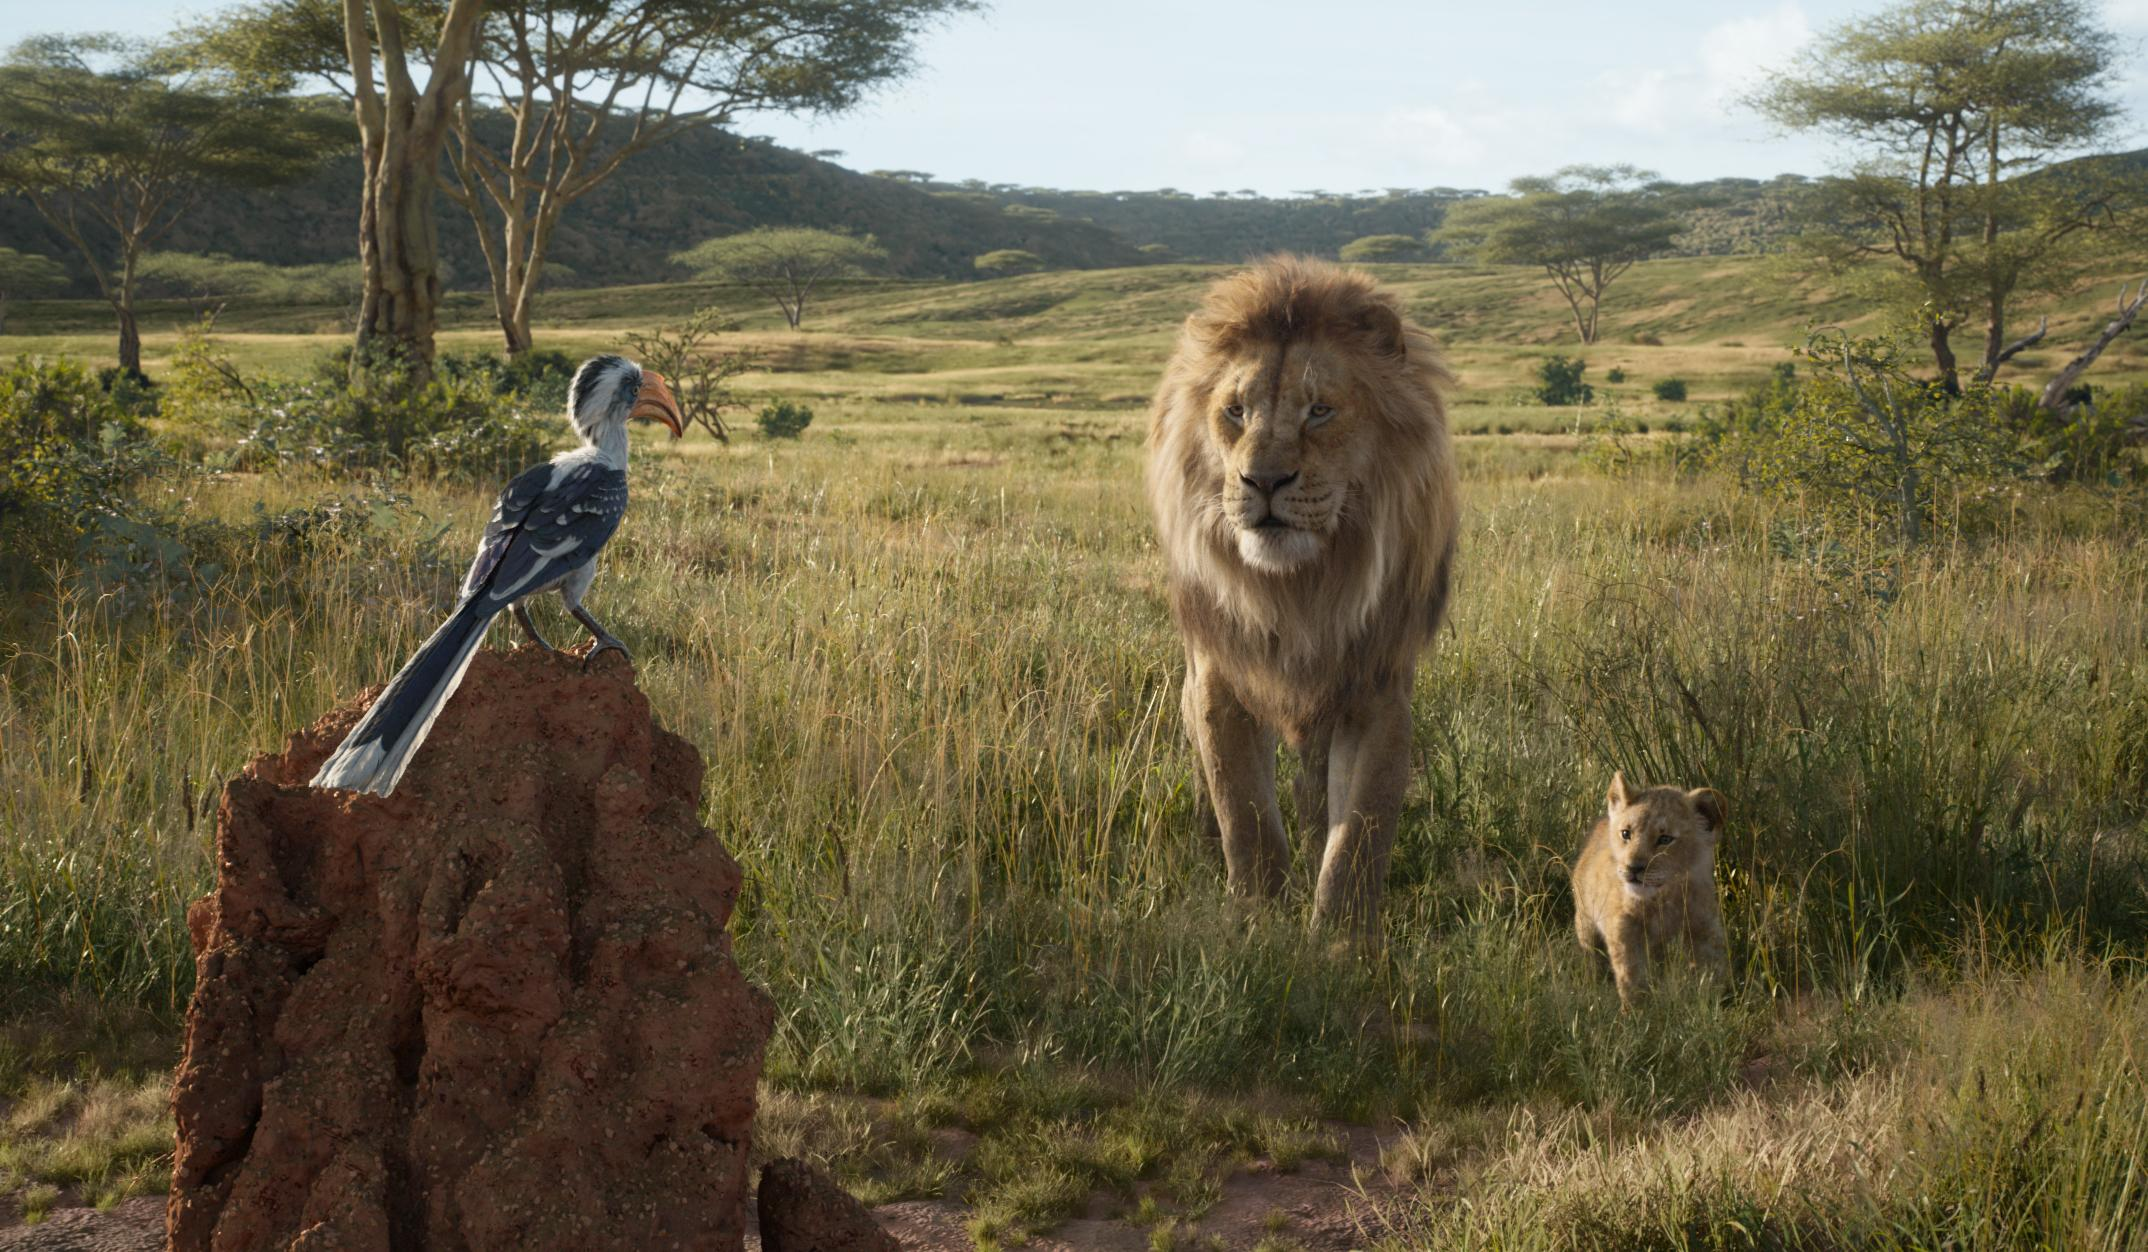 Mufasa leads Simba on a tour of the Pride Lands in 'The Lion King' (Photo: Disney Enterprises, Inc.)